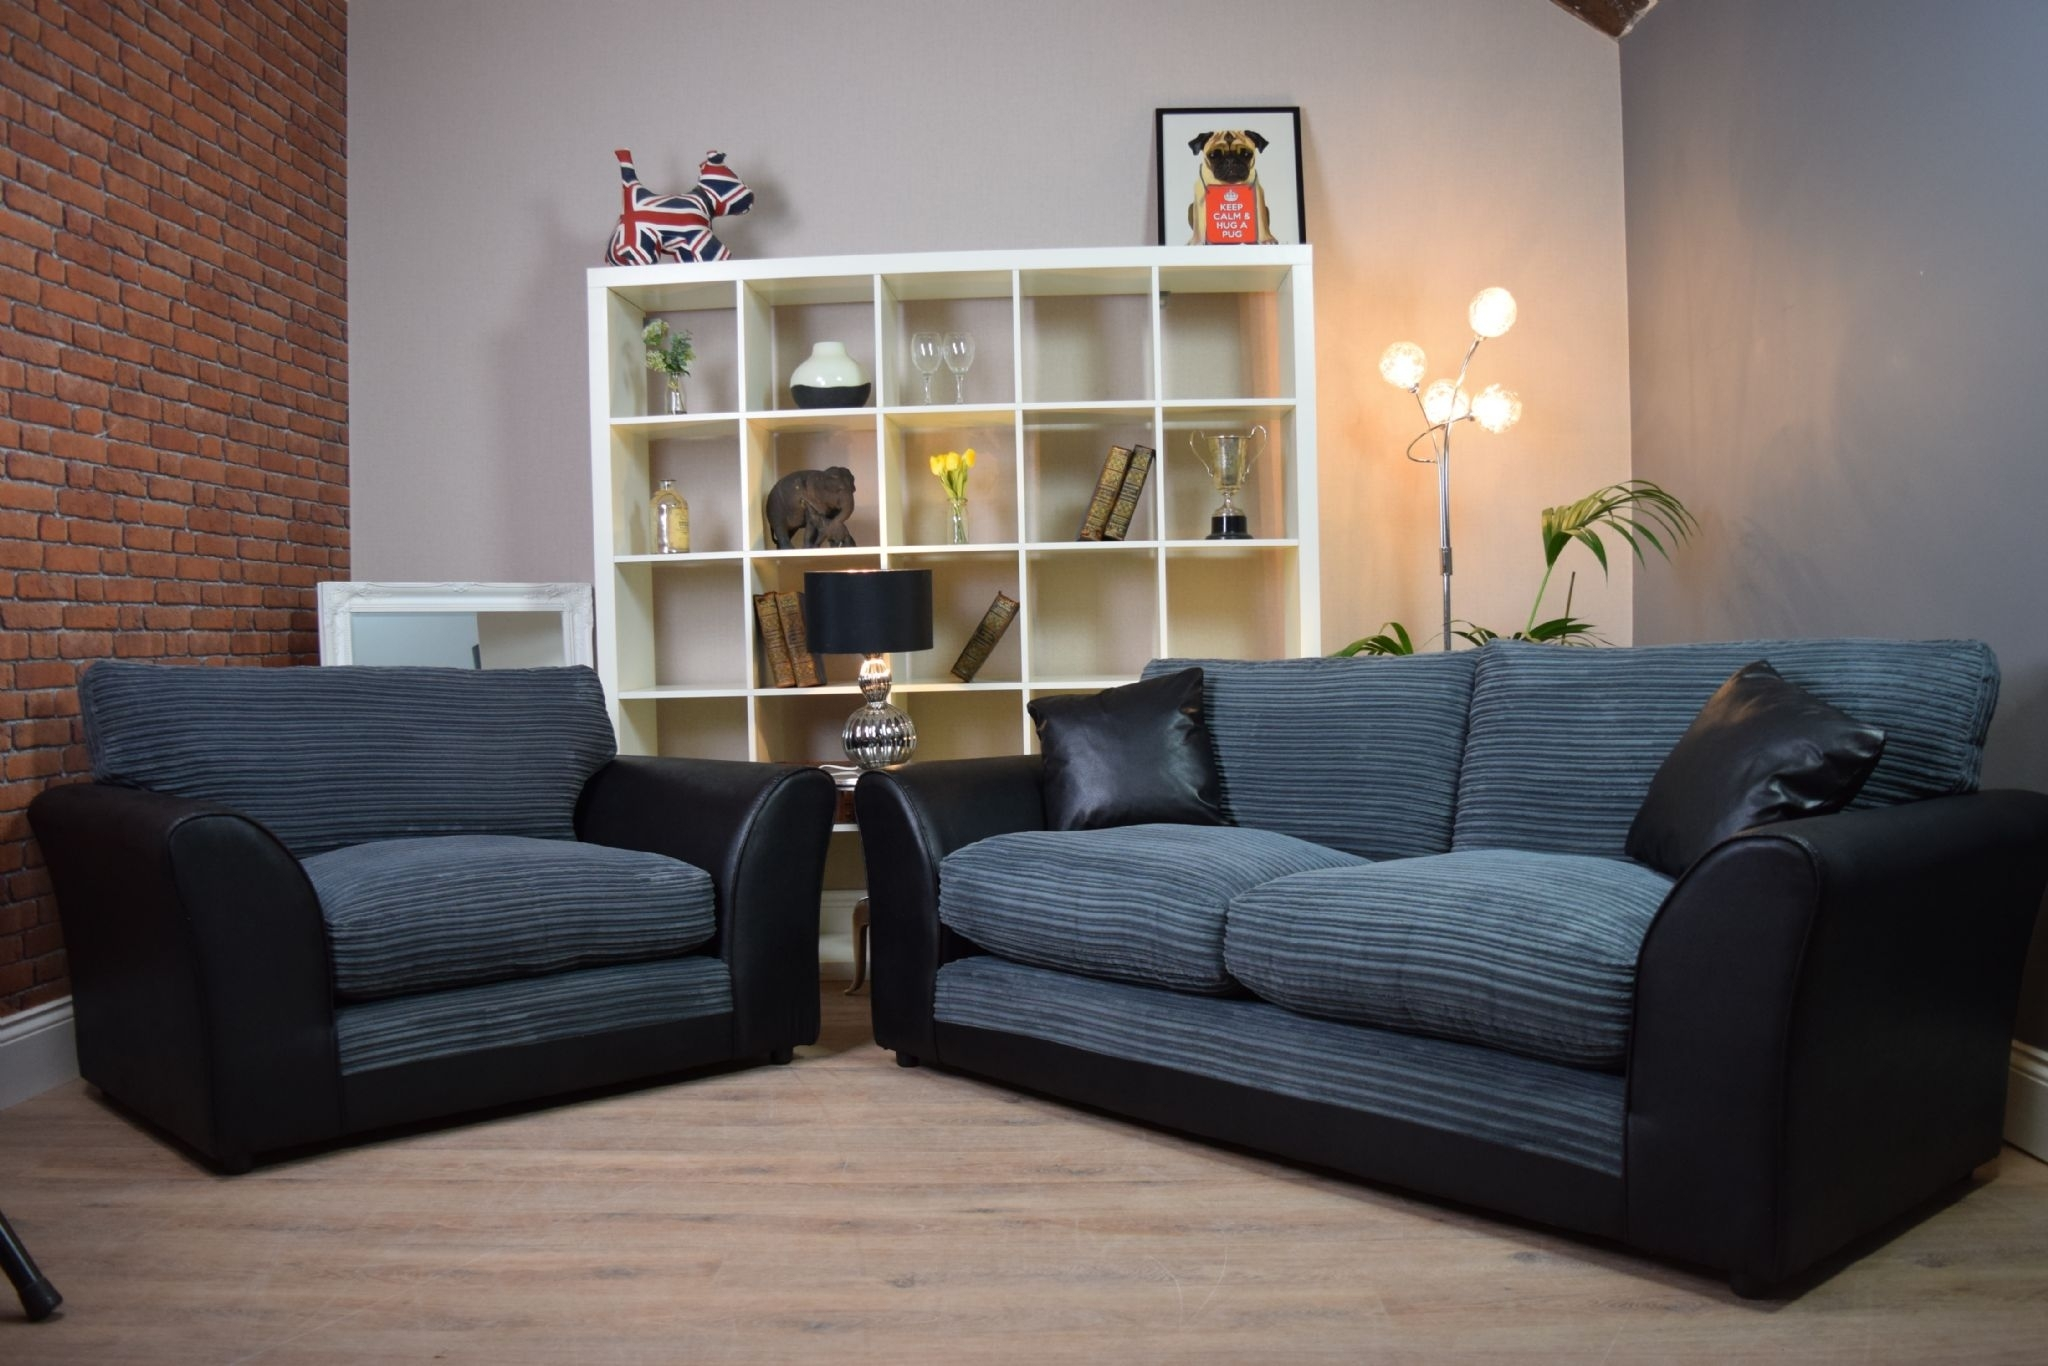 Set Harley Bailey 3 Seater Sofa Cuddle Chair Suite Set - Black Bison intended for 3 Seater Sofas And Cuddle Chairs (Image 7 of 10)